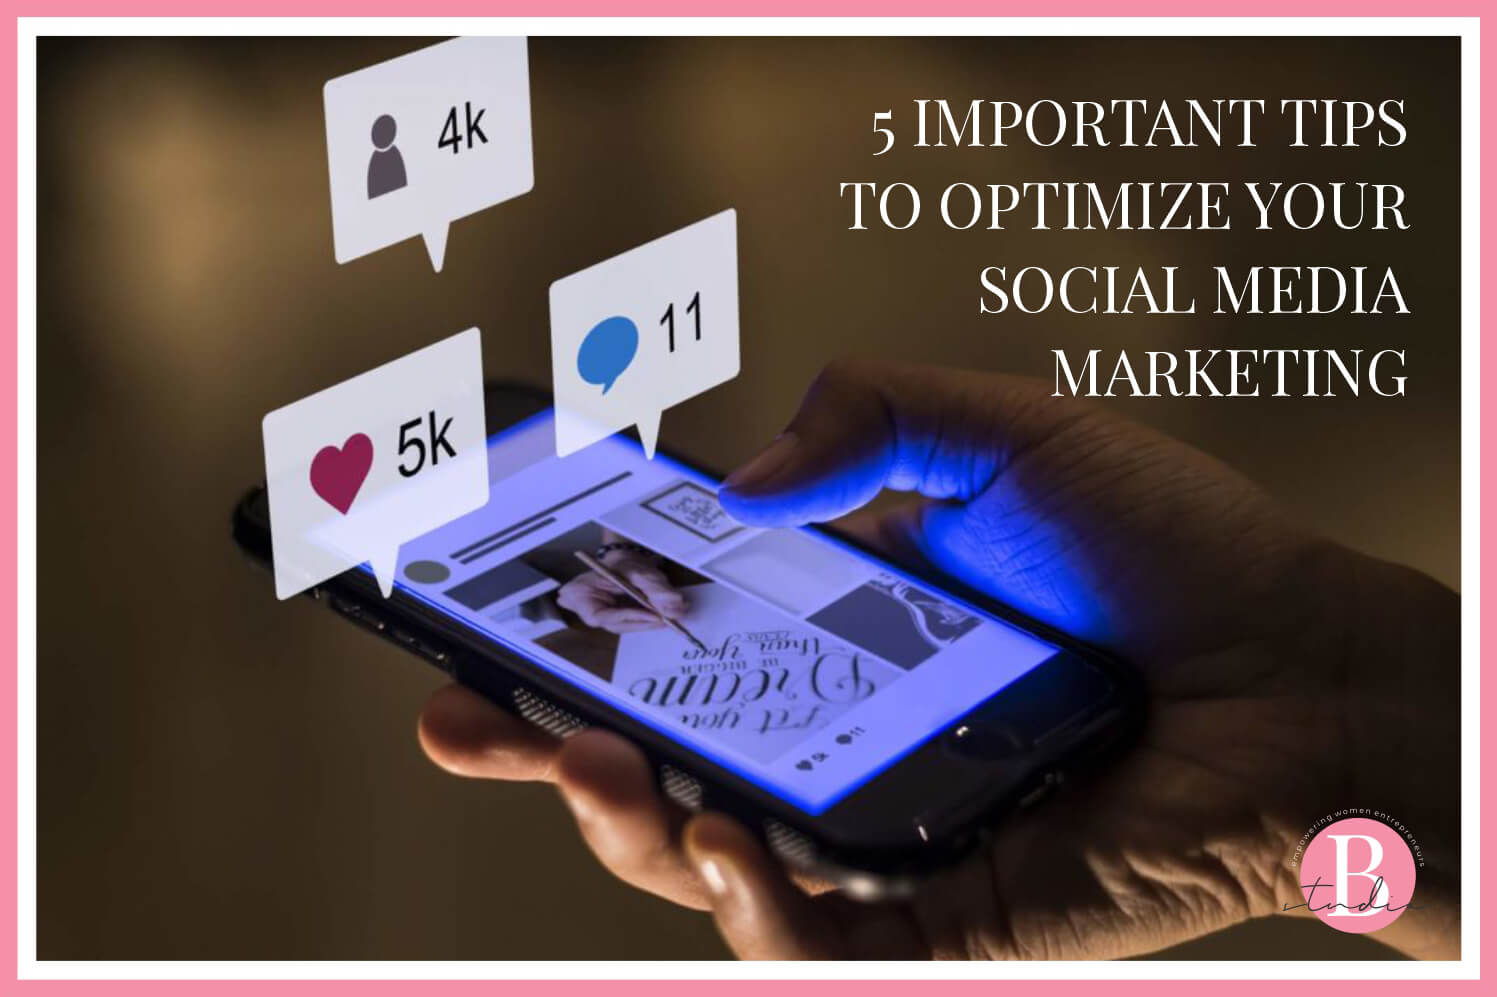 5 Important Tips to Optimize your Social Media Marketing img